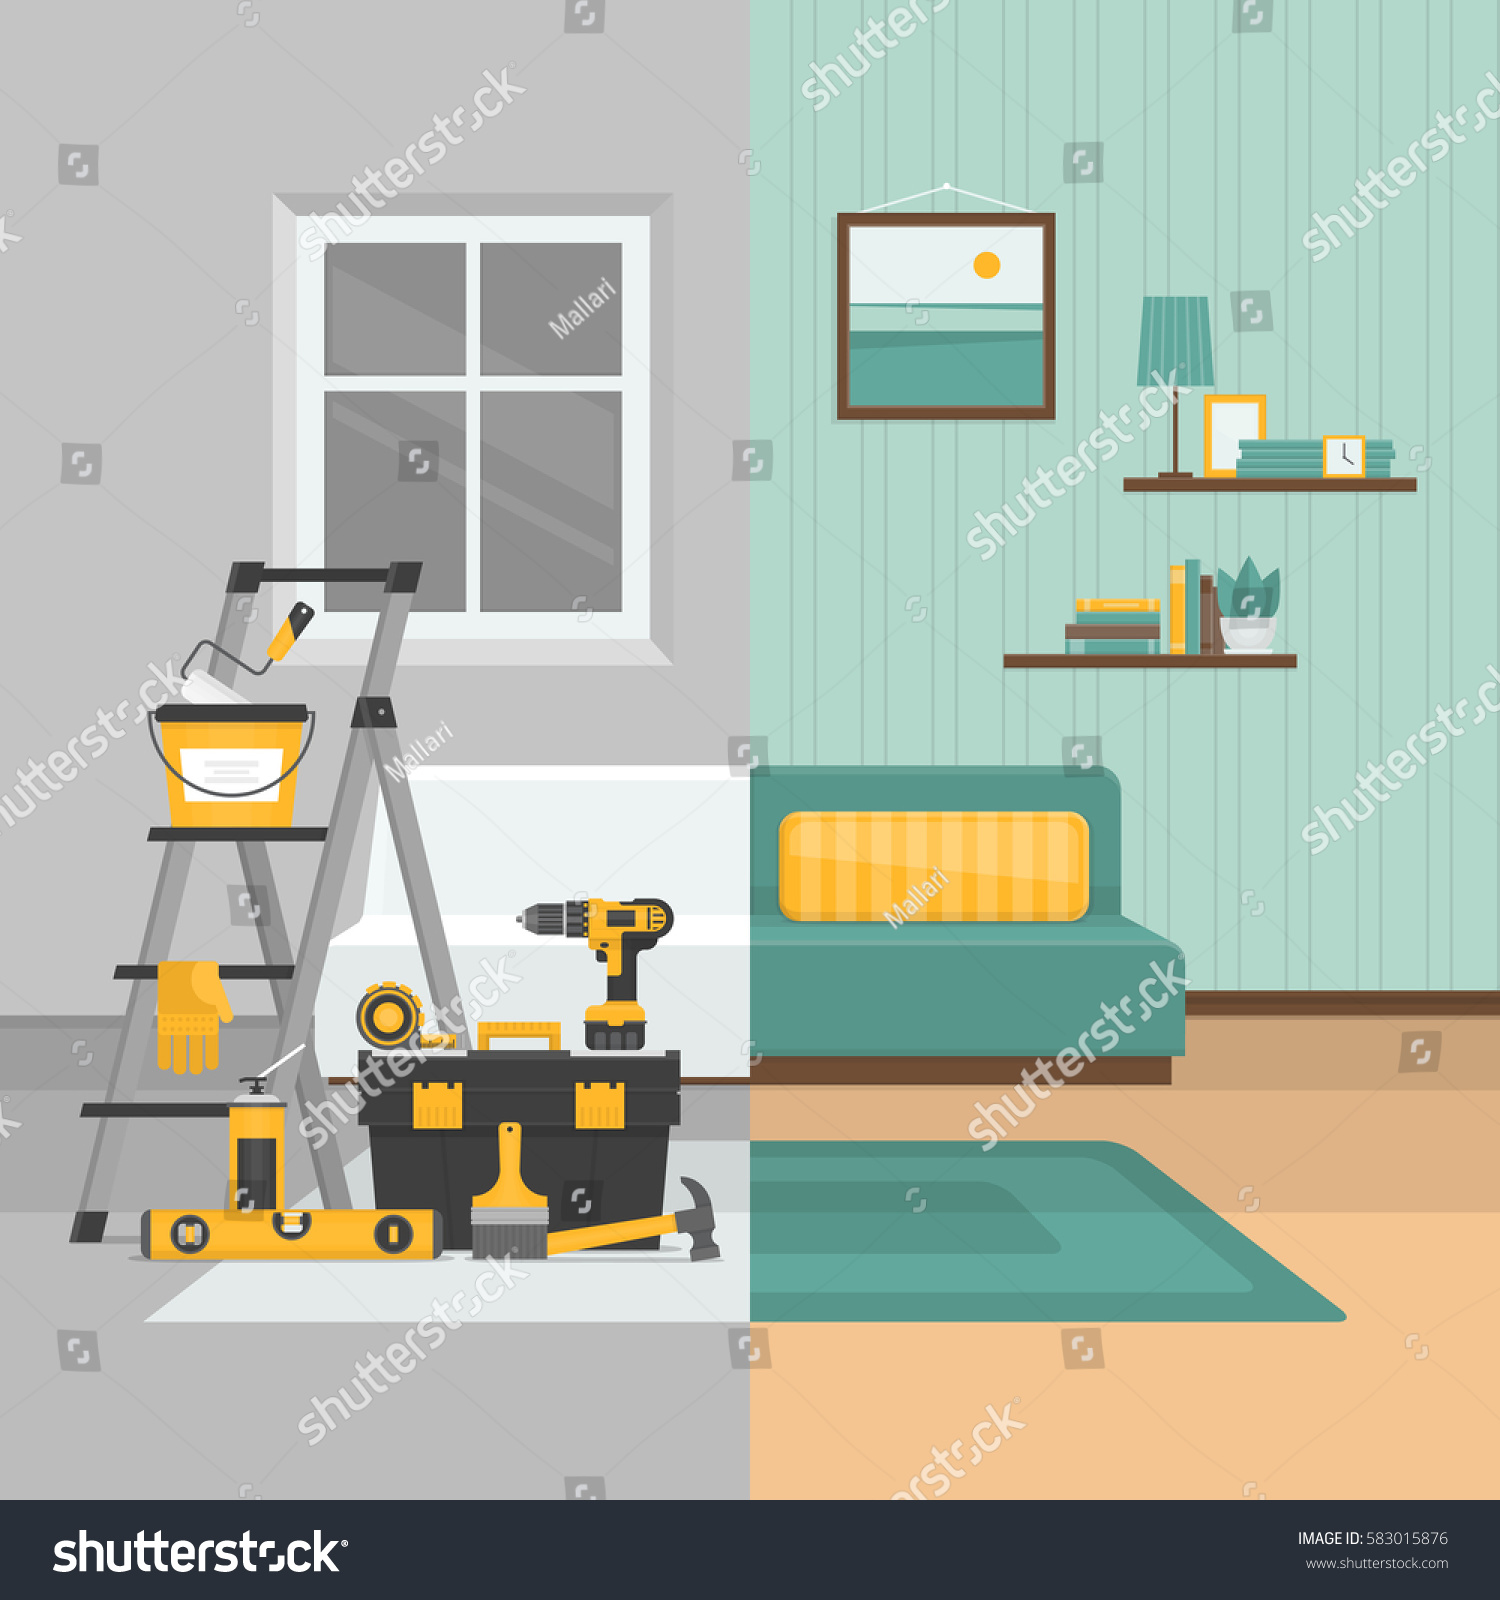 Room Before After Repair Home Interior Stock Vector